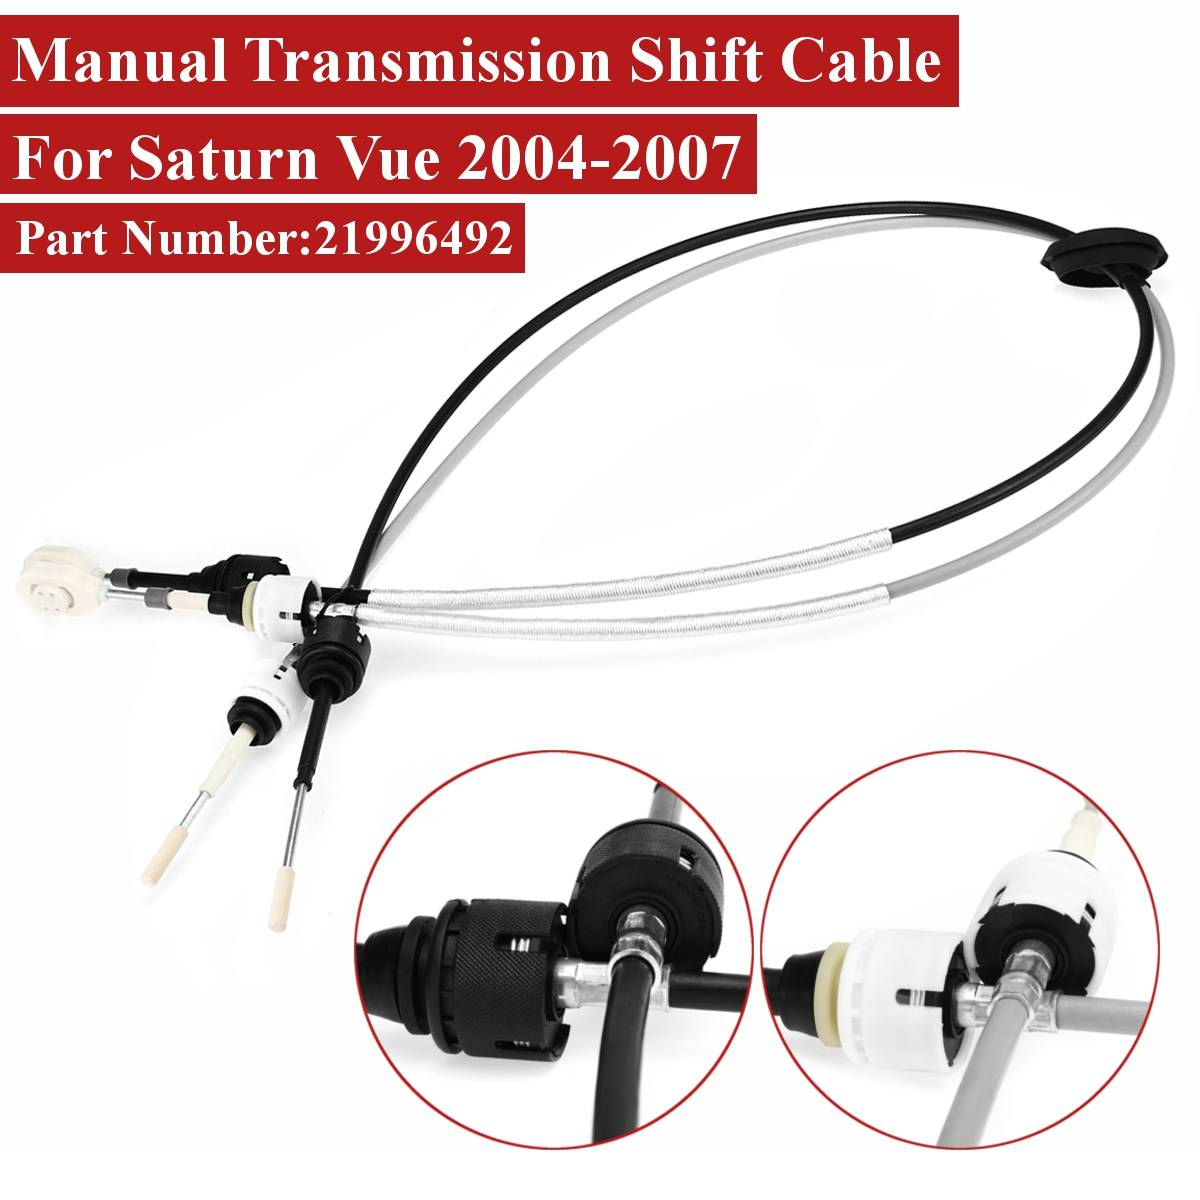 21996492 Manual Transmission Shift Cable For Saturn Vue 2004 2005 2006 2007